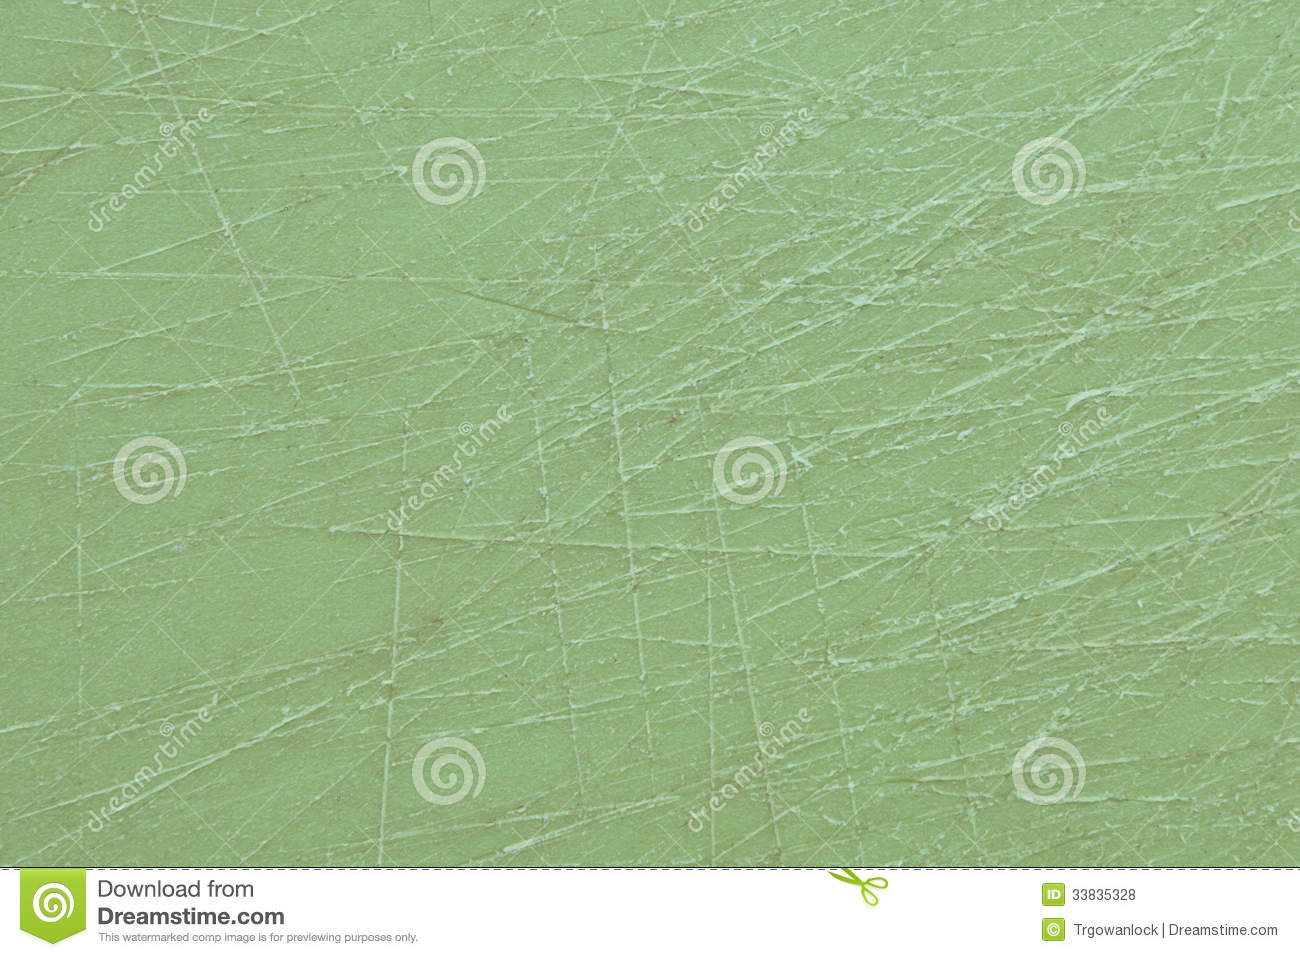 wallpaper surface scratches green - photo #7